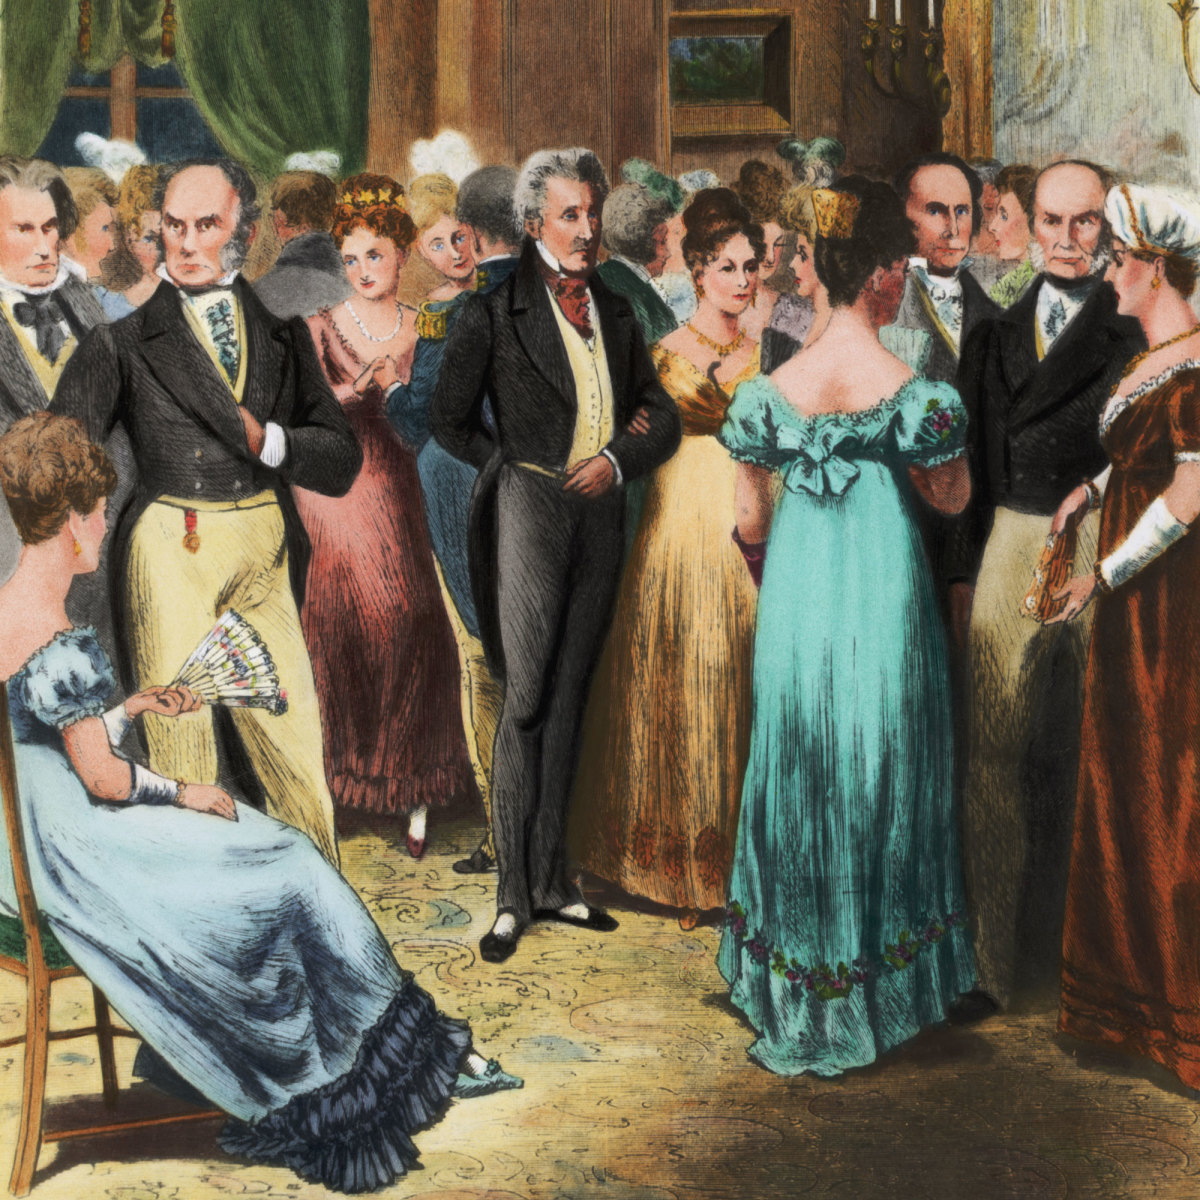 Many guests attended the balls hosted by Louisa Adams, including Andrew Jackson, seen in the center to the right of President John Quincy Adams. (Credit: Bettmann Archive/Getty Images)